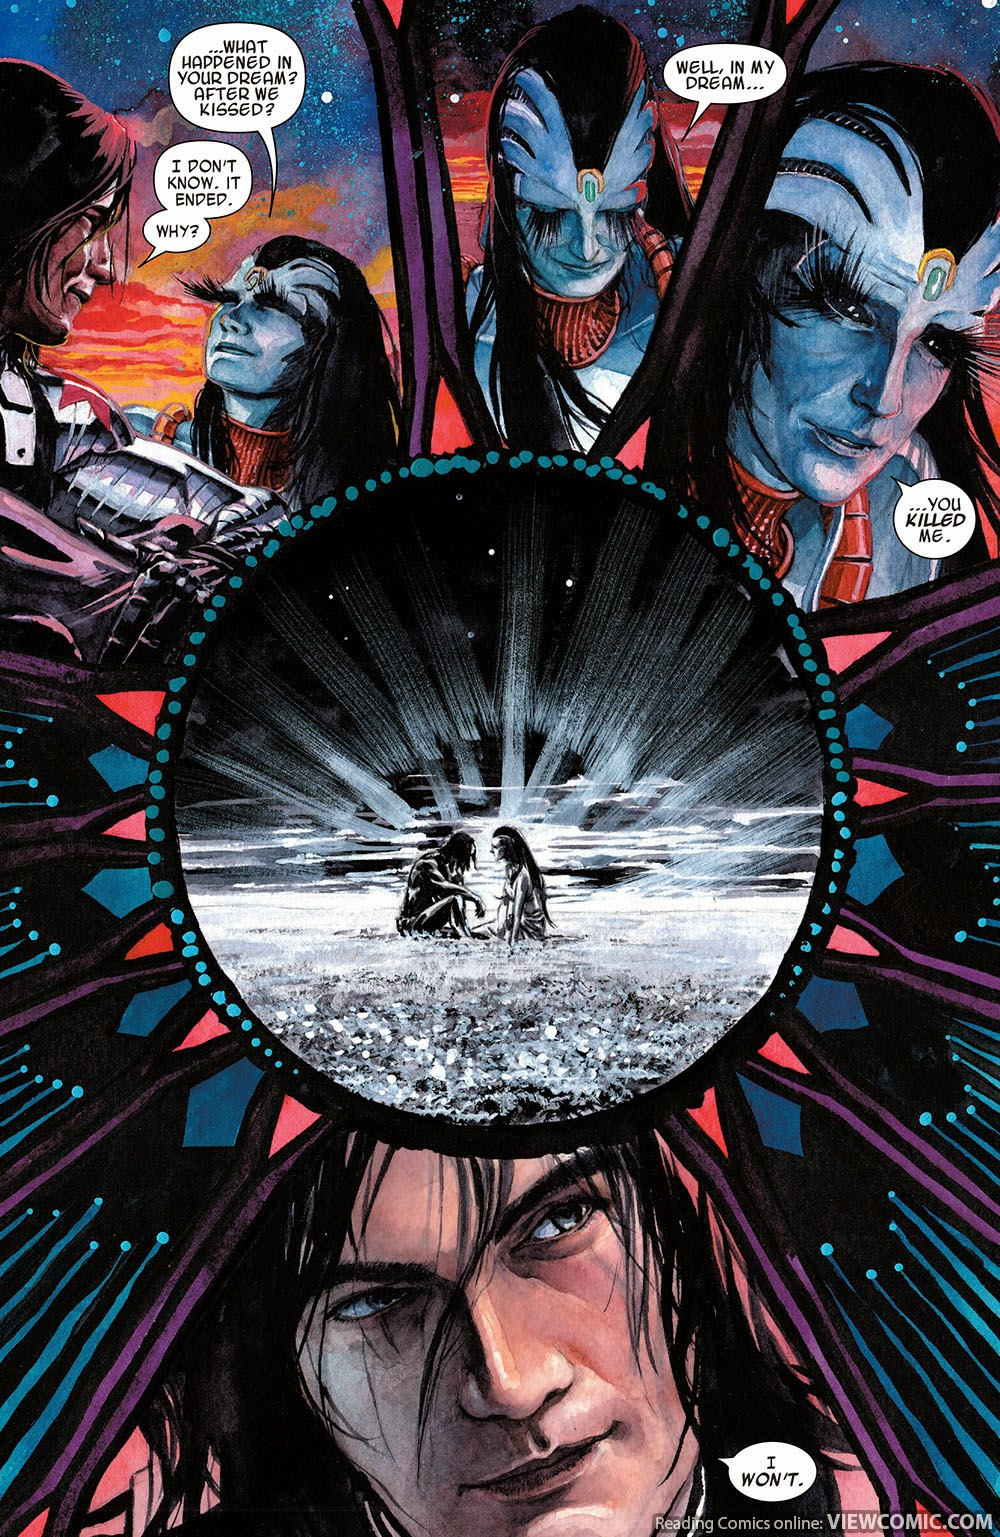 Bucky Barnes The Winter Soldier 003 (2014) | Viewcomic